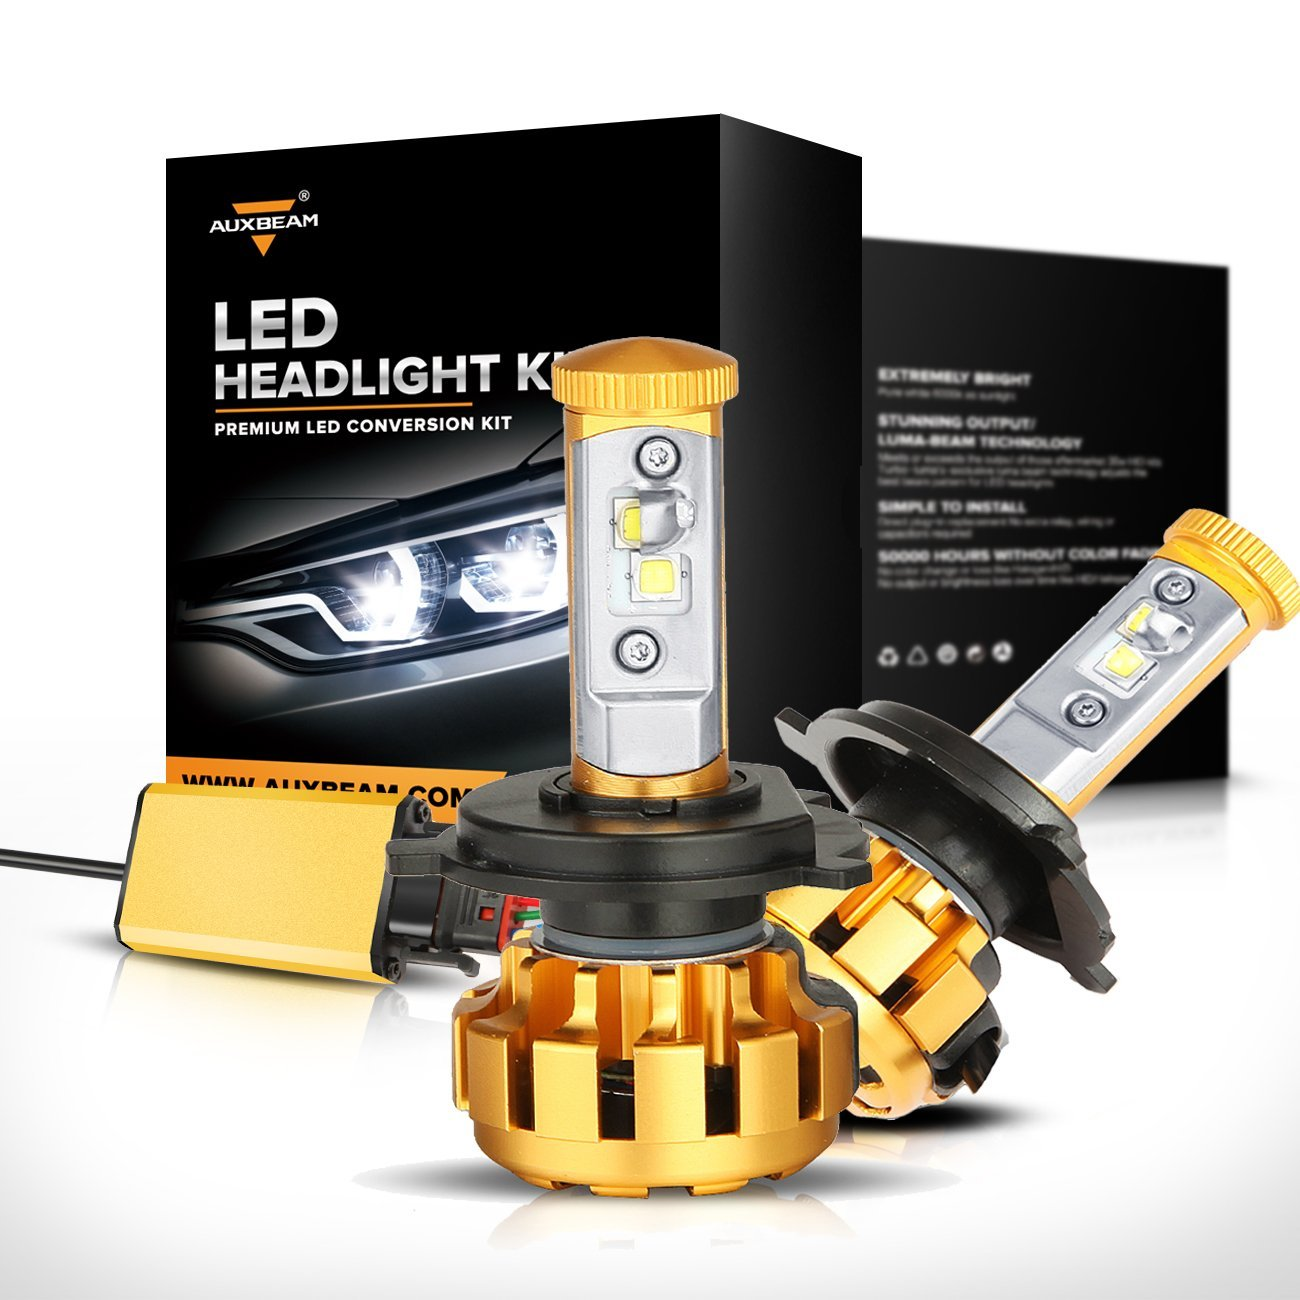 Auxbeam F-16 LED Headlight Conversion Kit